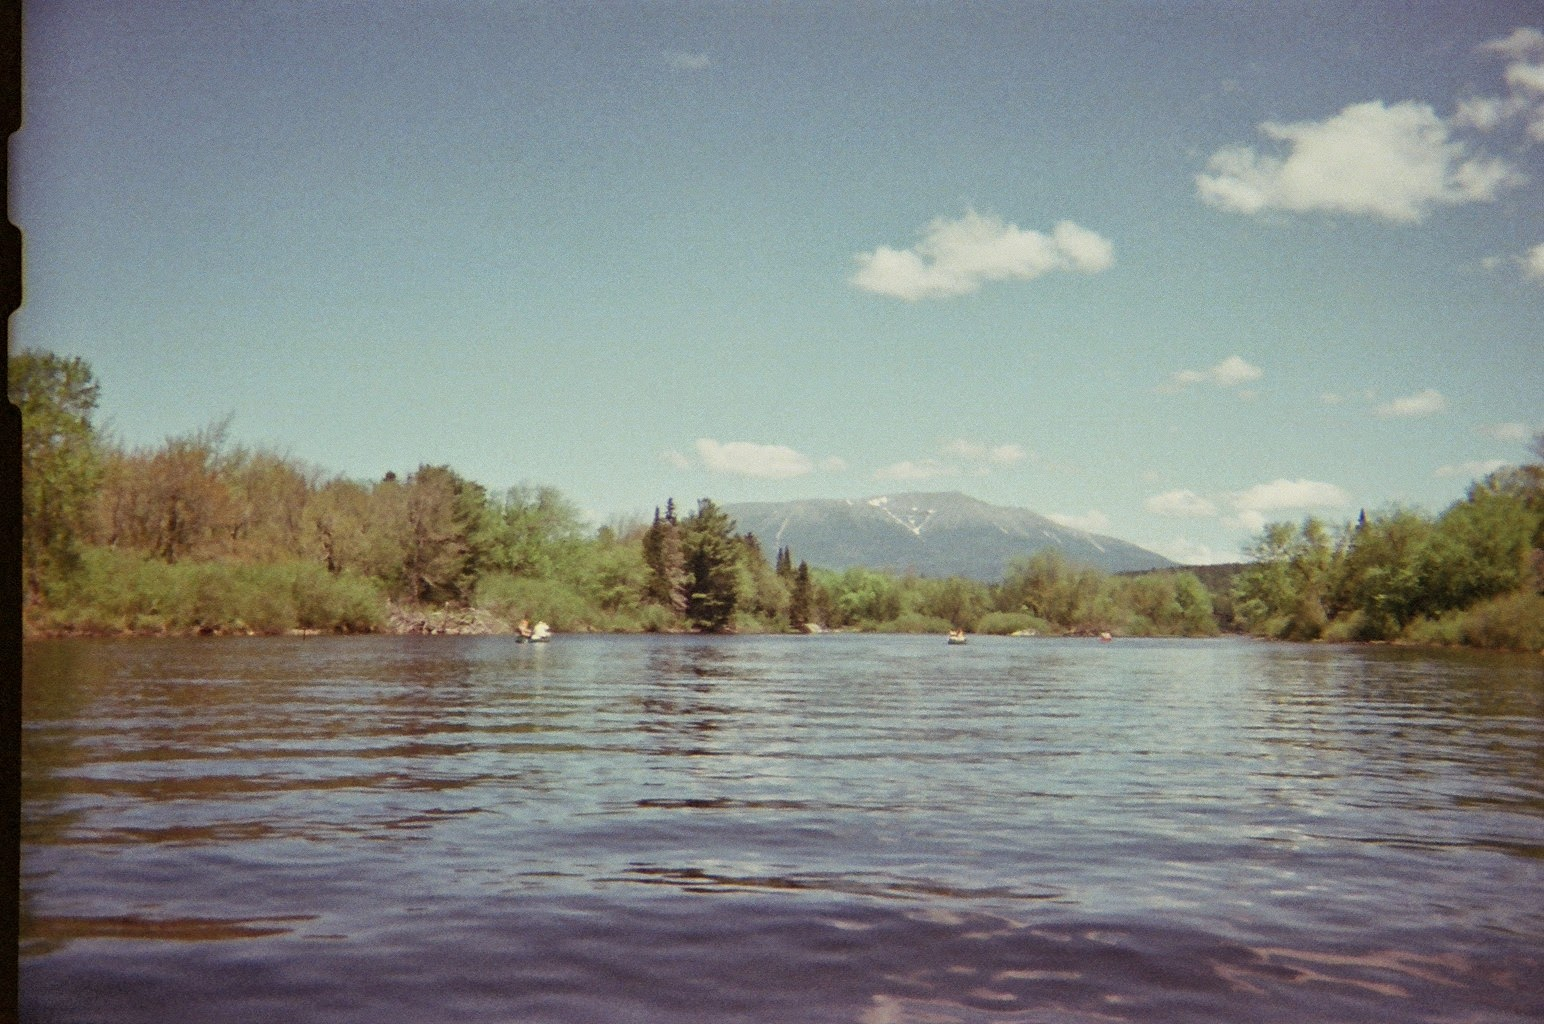 Canoeing on Debsconeag Lakes